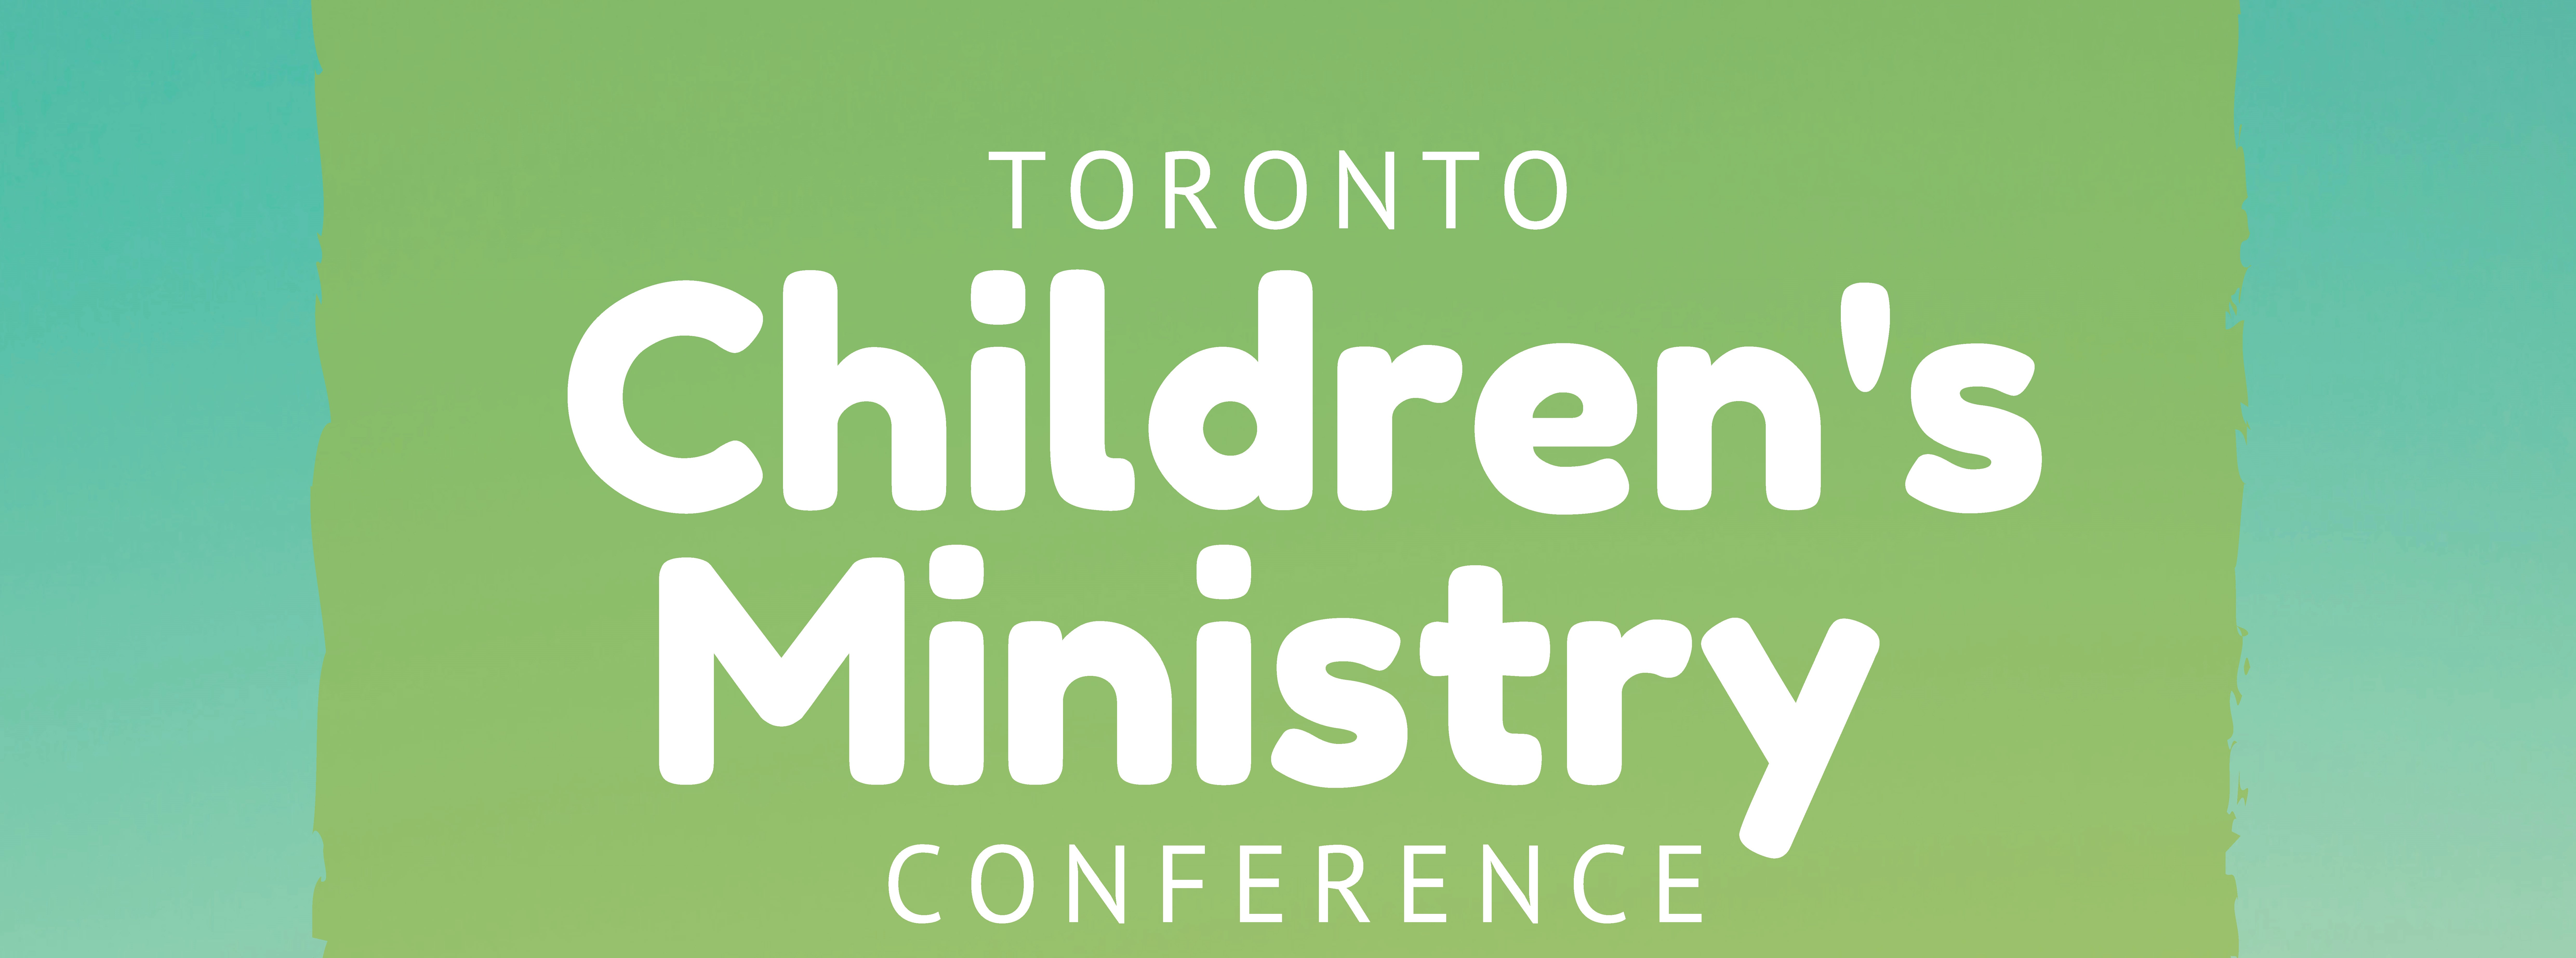 Toronto Children's Ministry Conference 2018